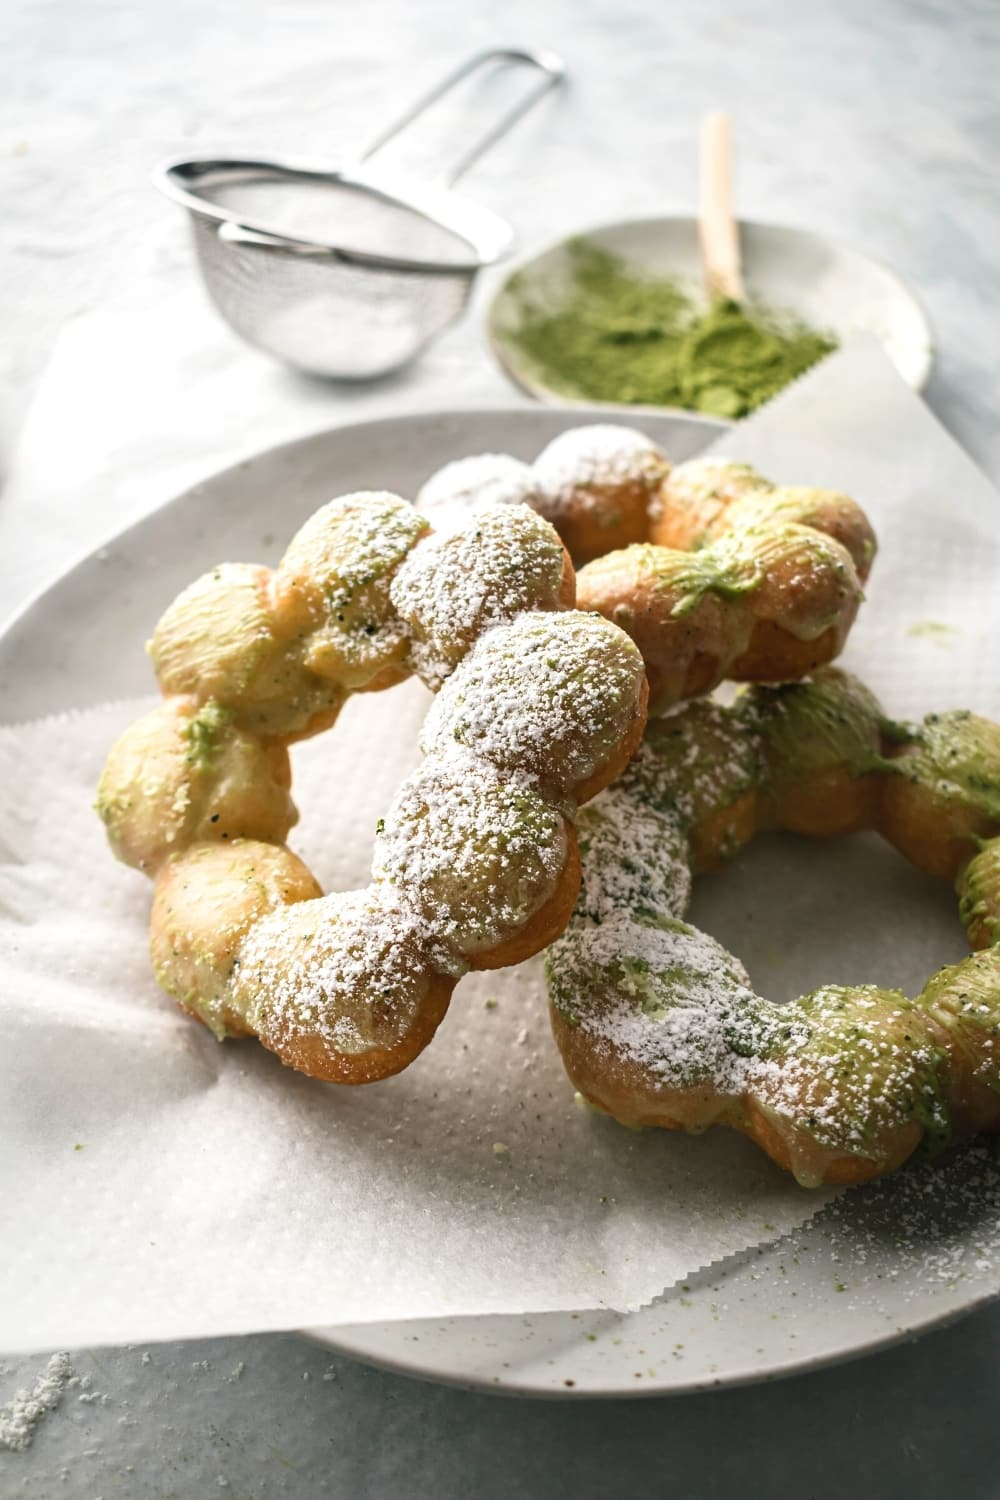 Three mochi donuts overlapping one another on a paper towel on top of a white plate. Behind it is a mesh sieve with powdered sugar in it and a small plate with matcha powder on it.